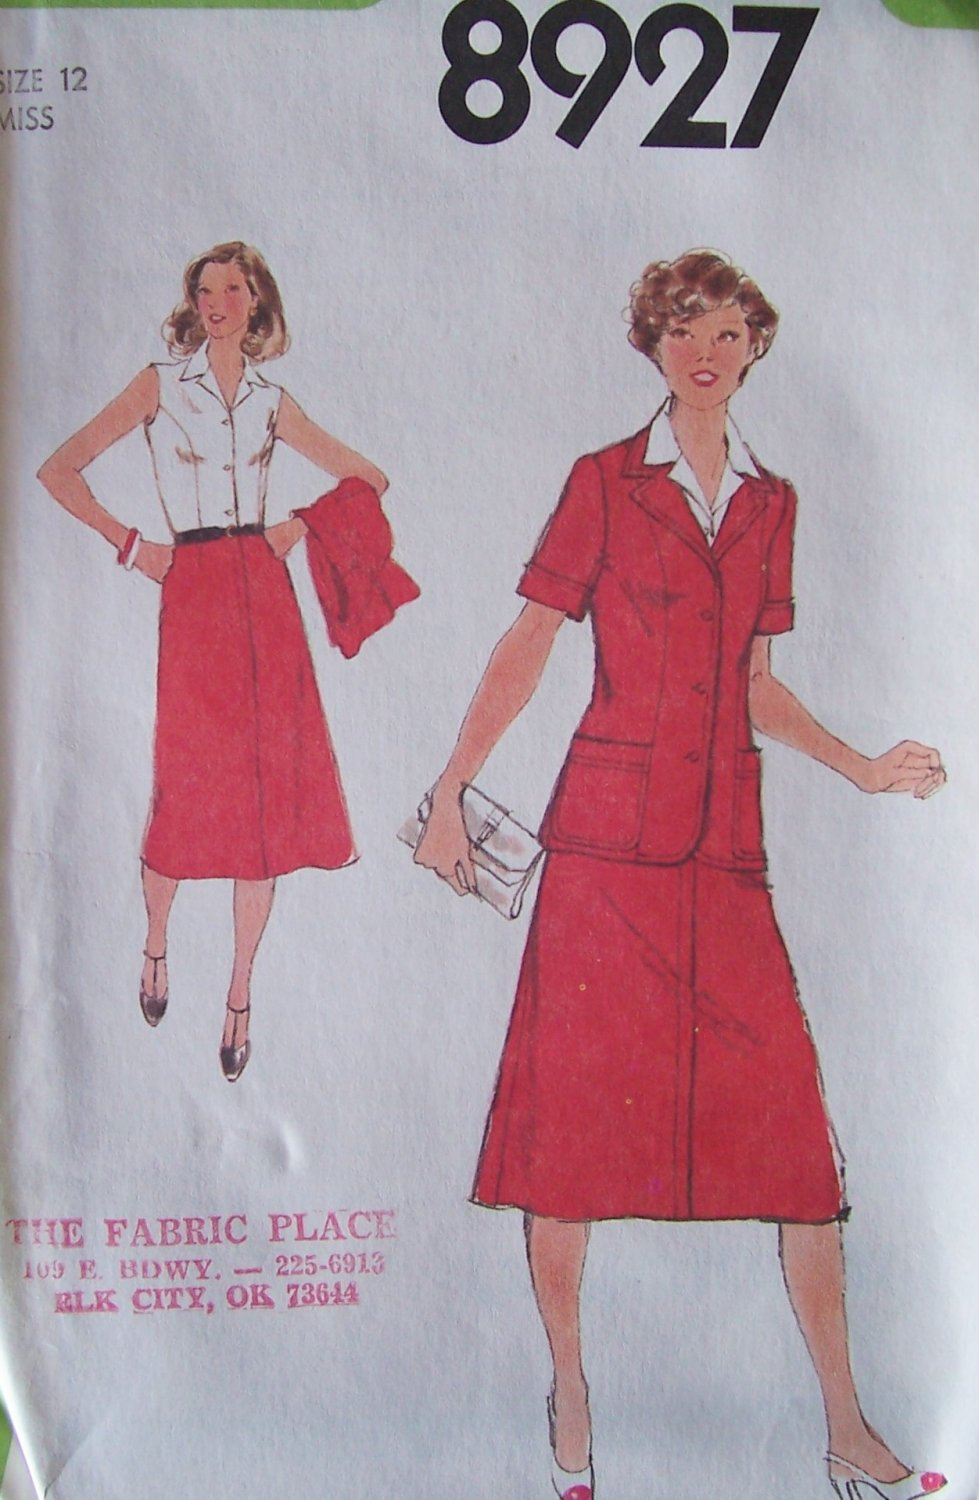 Vintage 70s Simplicity 8927 Sleeveless Dress and Jacket Sewing Pattern Uncut Size 12 Bust 34